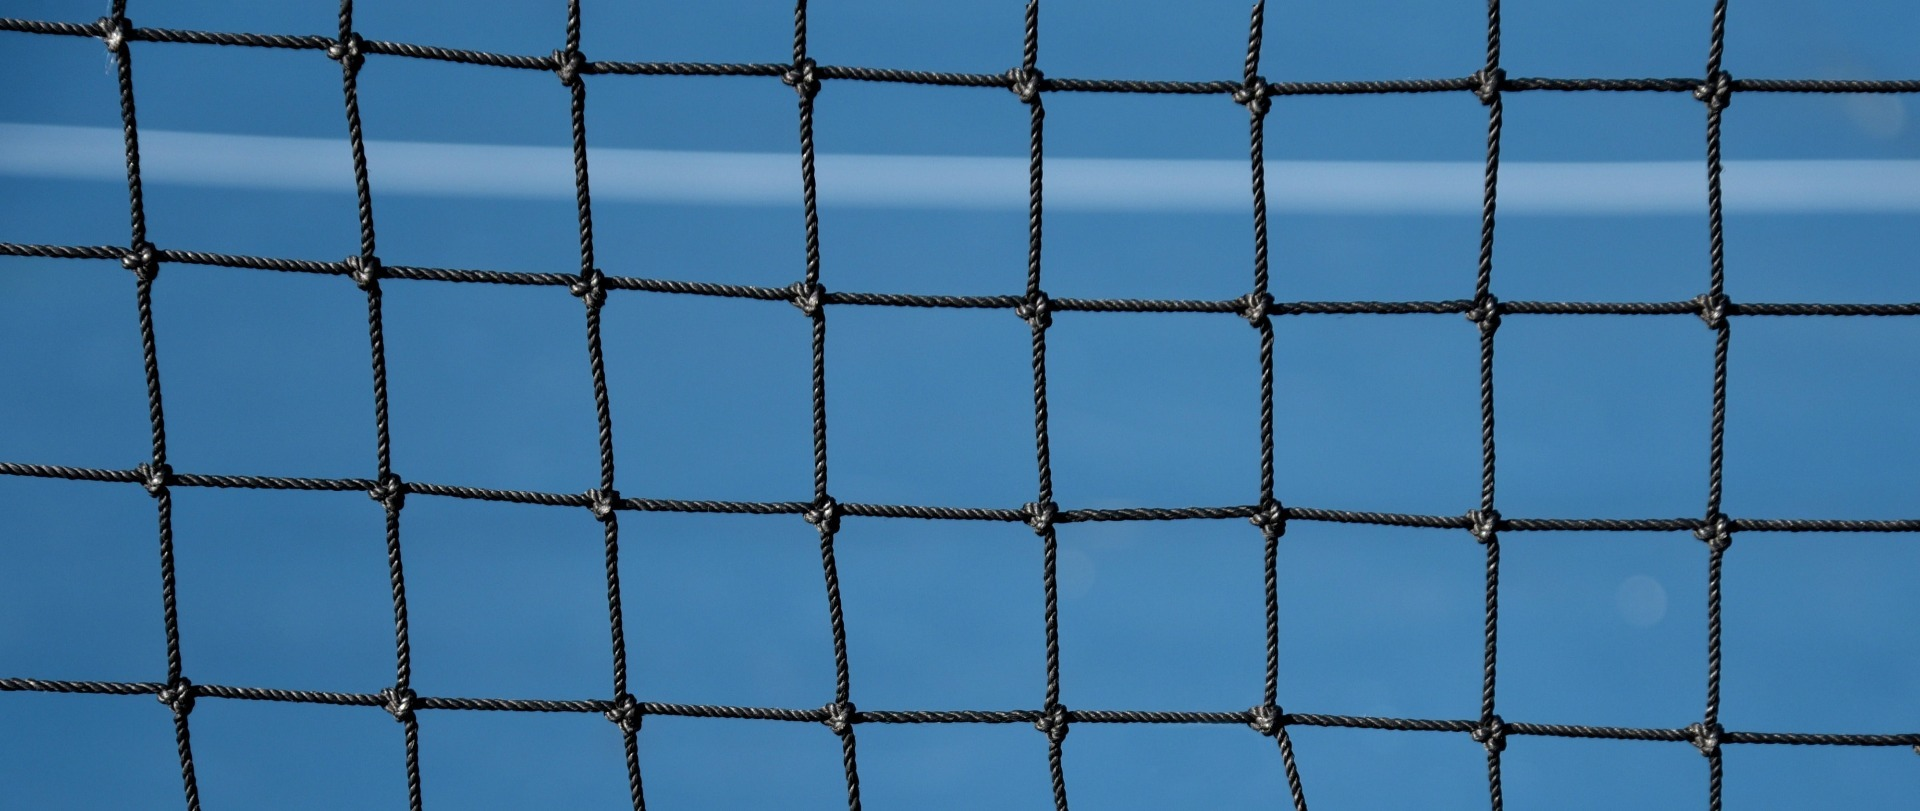 Netting & Fleece - Butterfly Netting - Banner Image